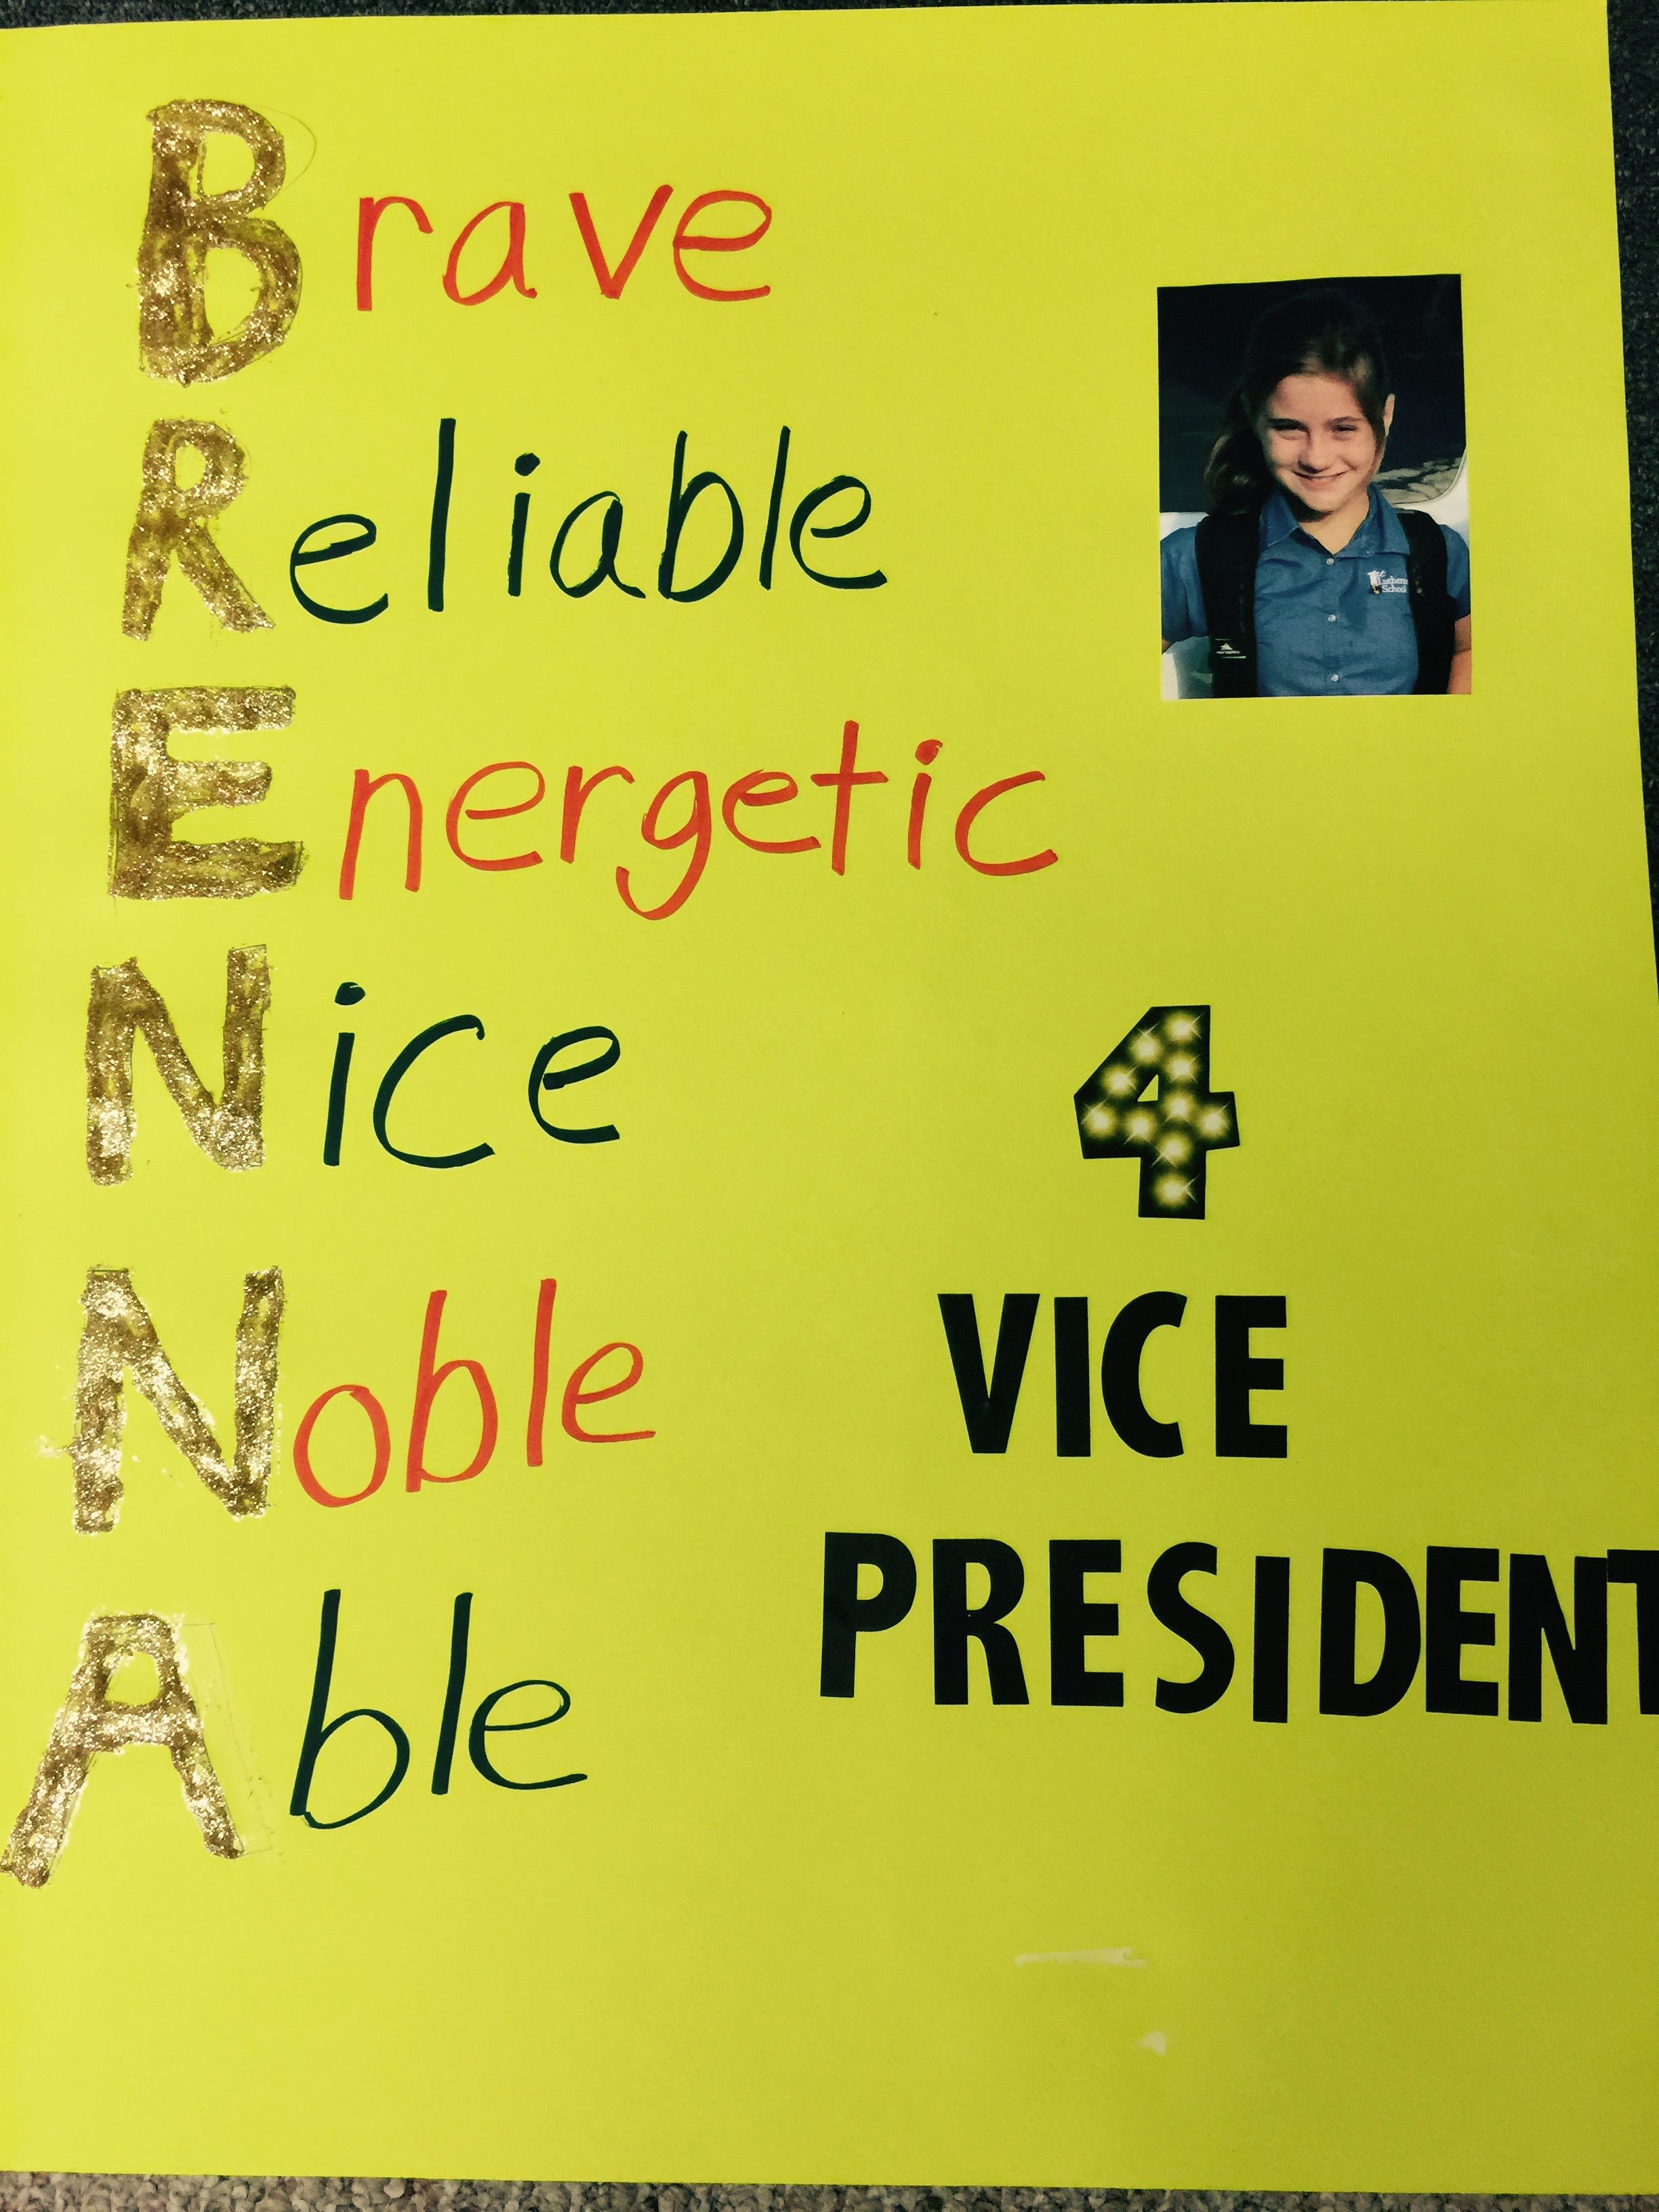 Pin on Elementary School Student Council Election Posters